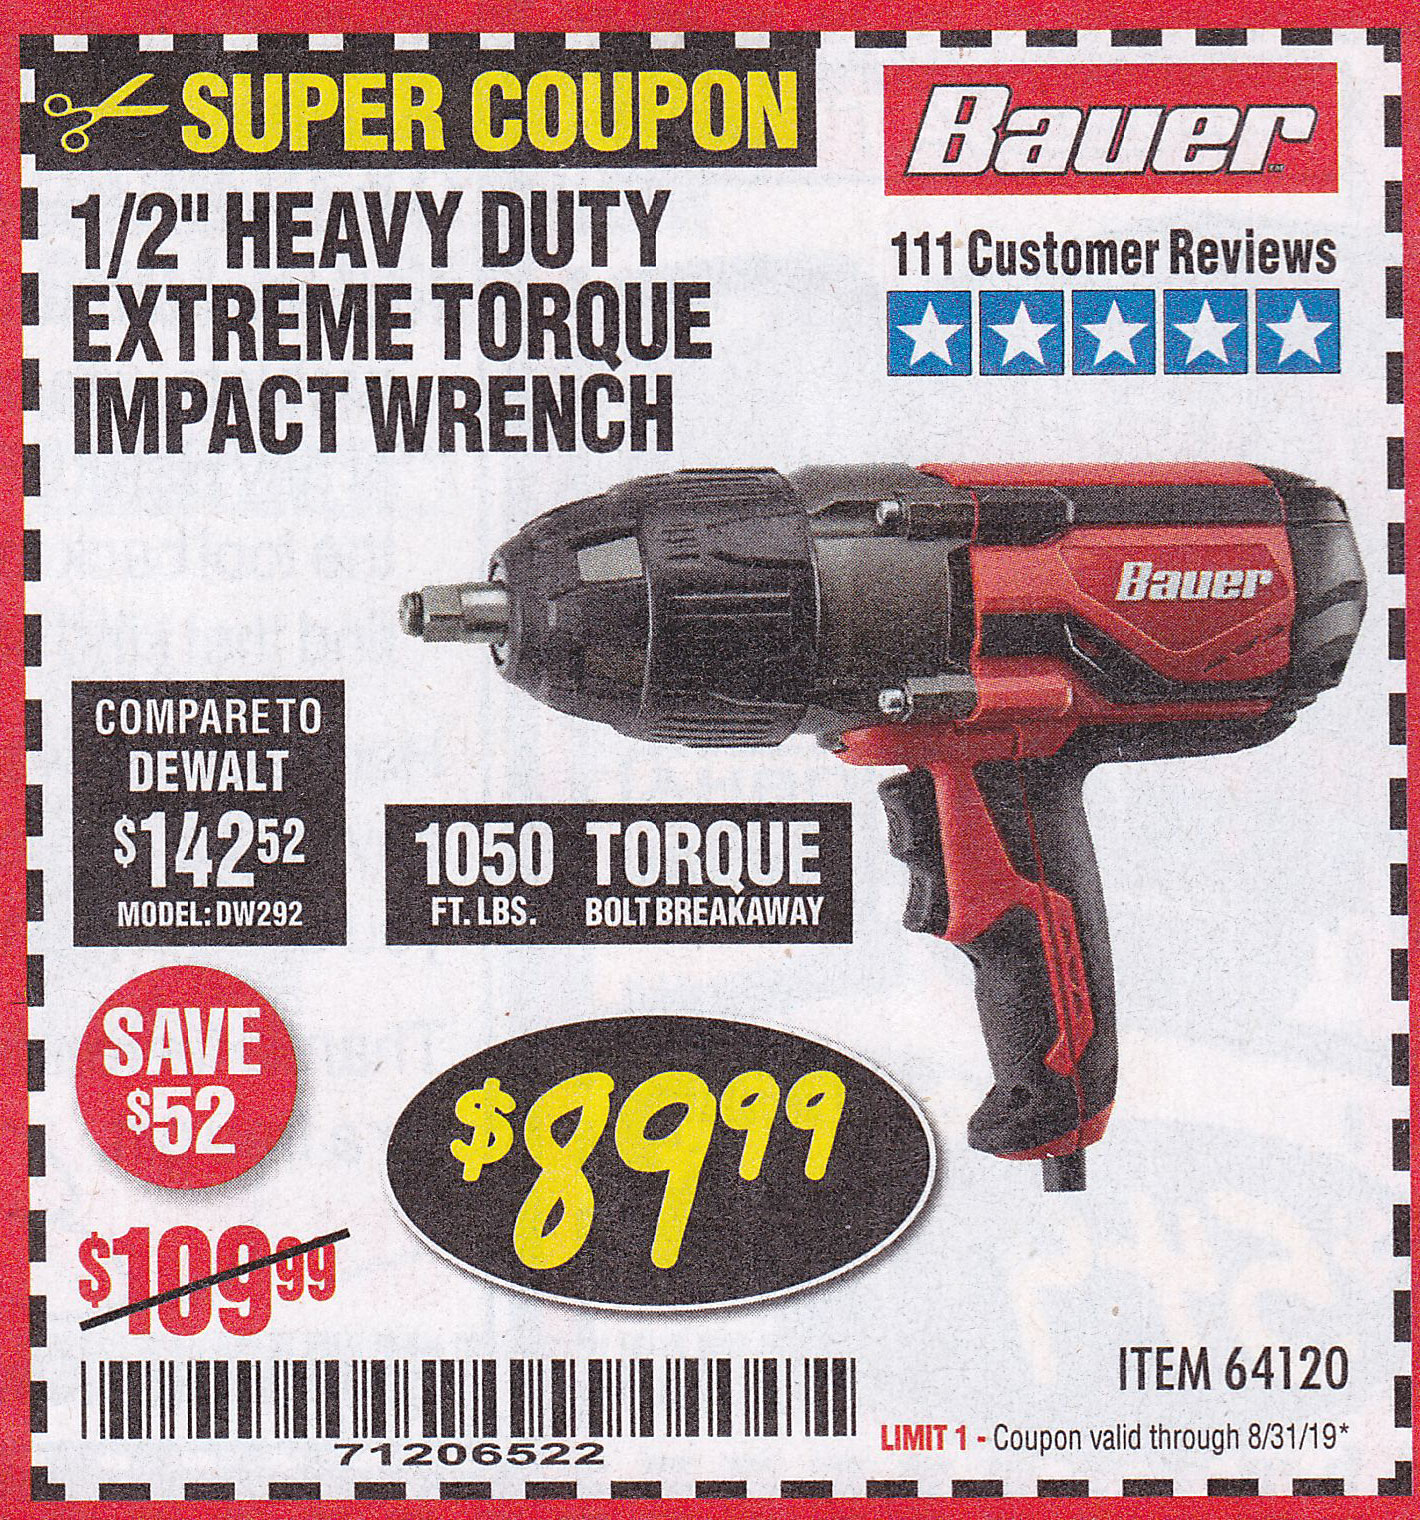 "www.hfqpdb.com - BAUER 1/2"" EXTREME TORQUE CORDED IMPACT WRENCH Lot No. 64120"